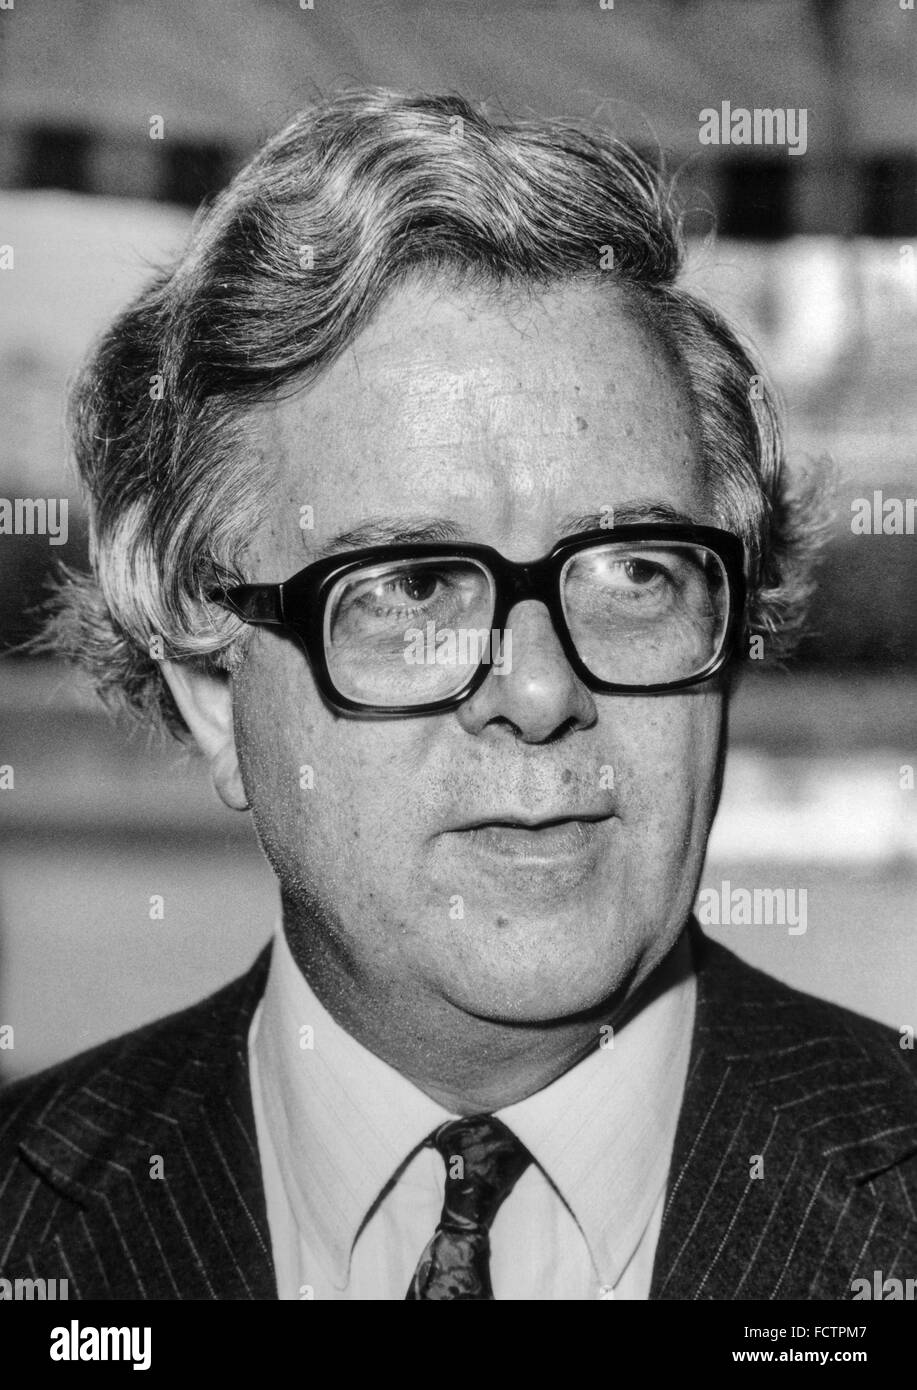 Richard Edward Geoffrey Howe, Baron Howe of Aberavon, CH, QC, PC, known from 1970 to 1992 as Sir Geoffrey Howe - Stock Image